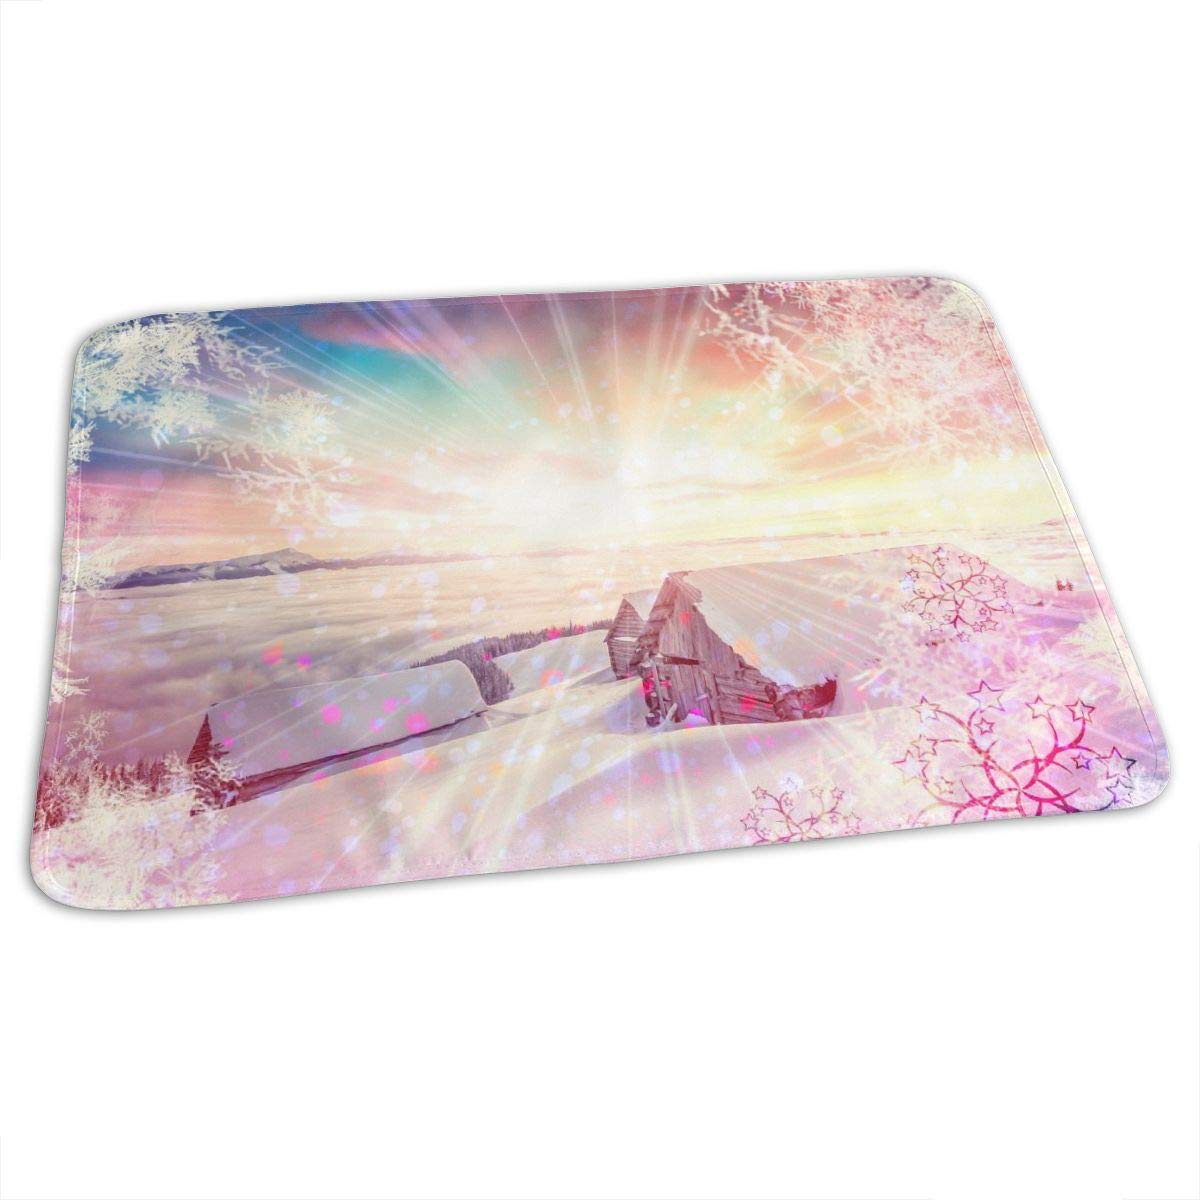 Osvbs Lovely Baby Reusable Waterproof Portable Colorful Winter Sunrise in The Mountains Changing Pad Home Travel 27.5''x19.7'' by Osvbs